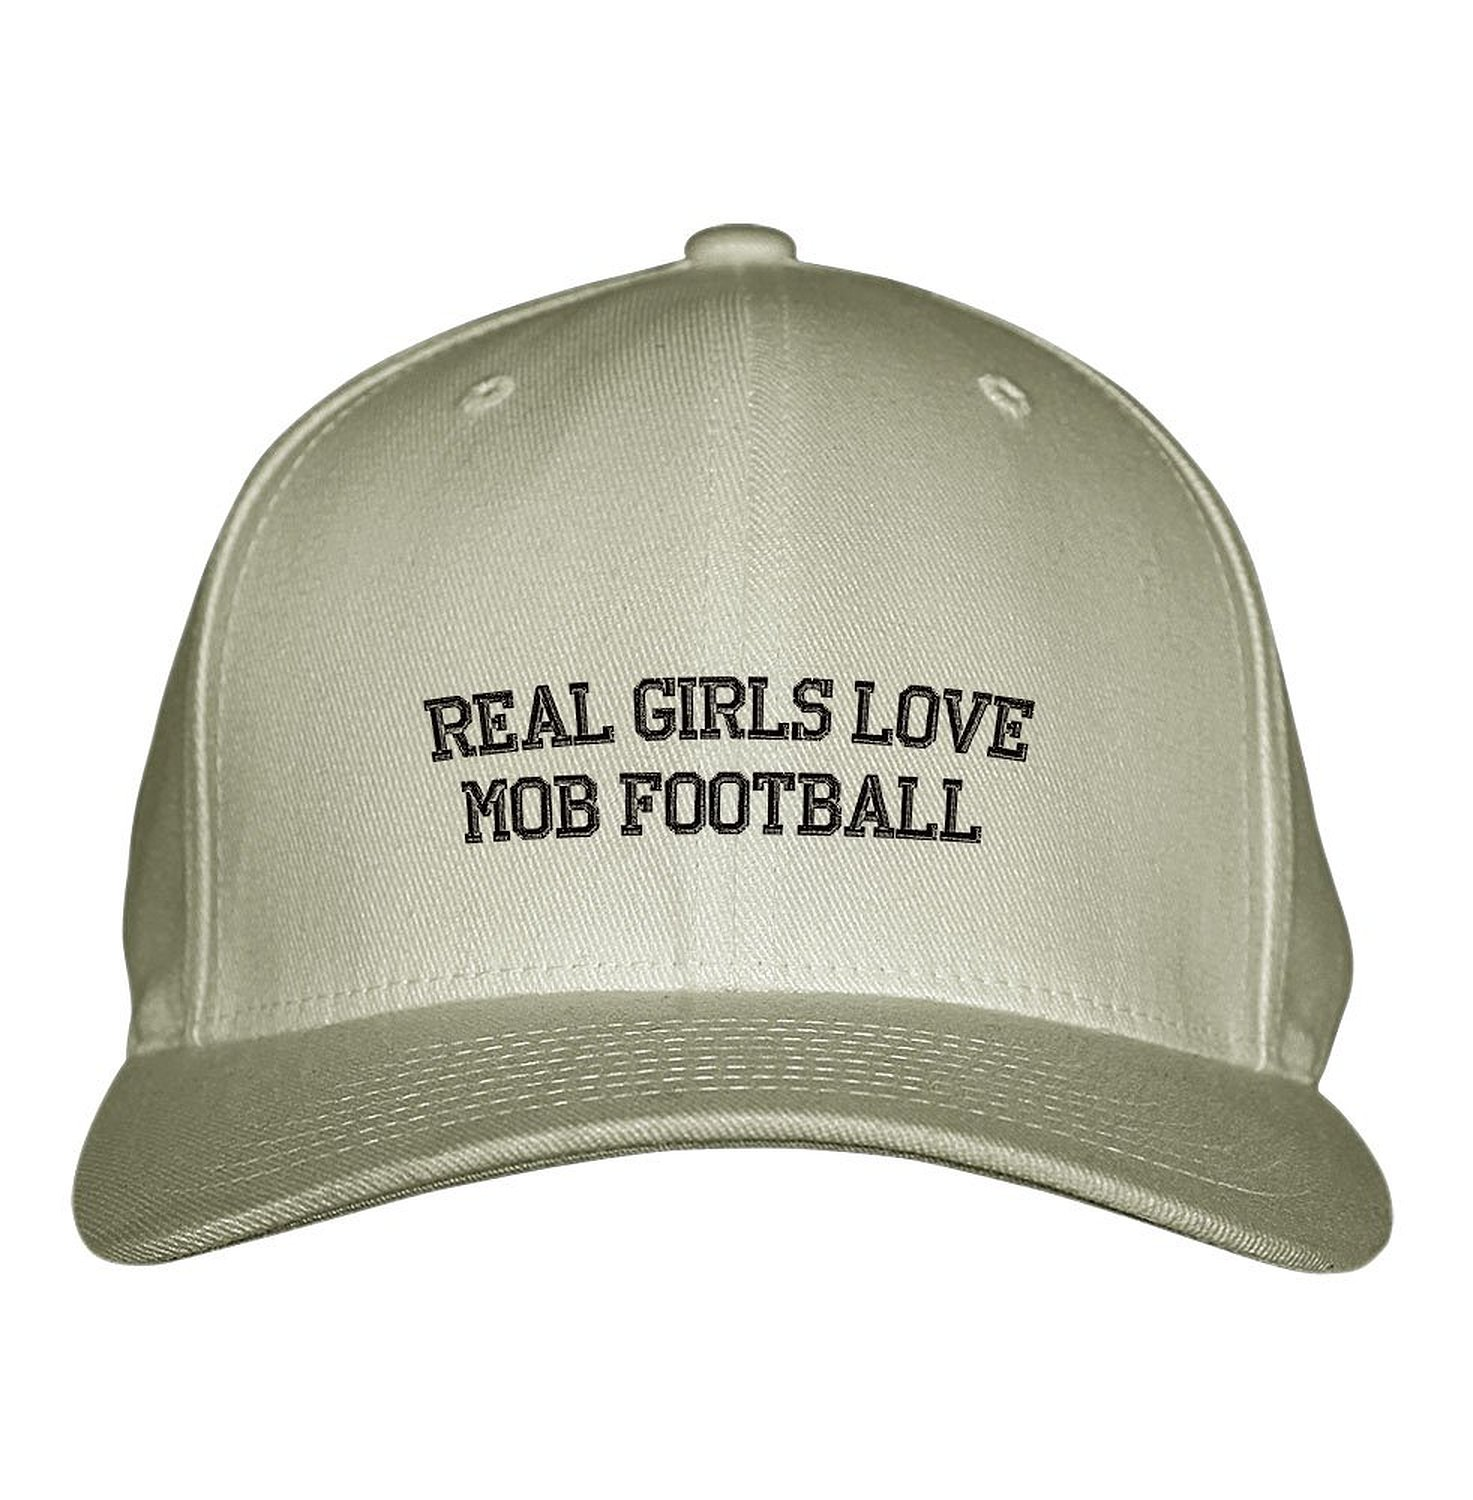 83643de4f9b Get Quotations · Real Girls Love Mob Football Sport Embroidered Adjustable  Structured Hat Cap